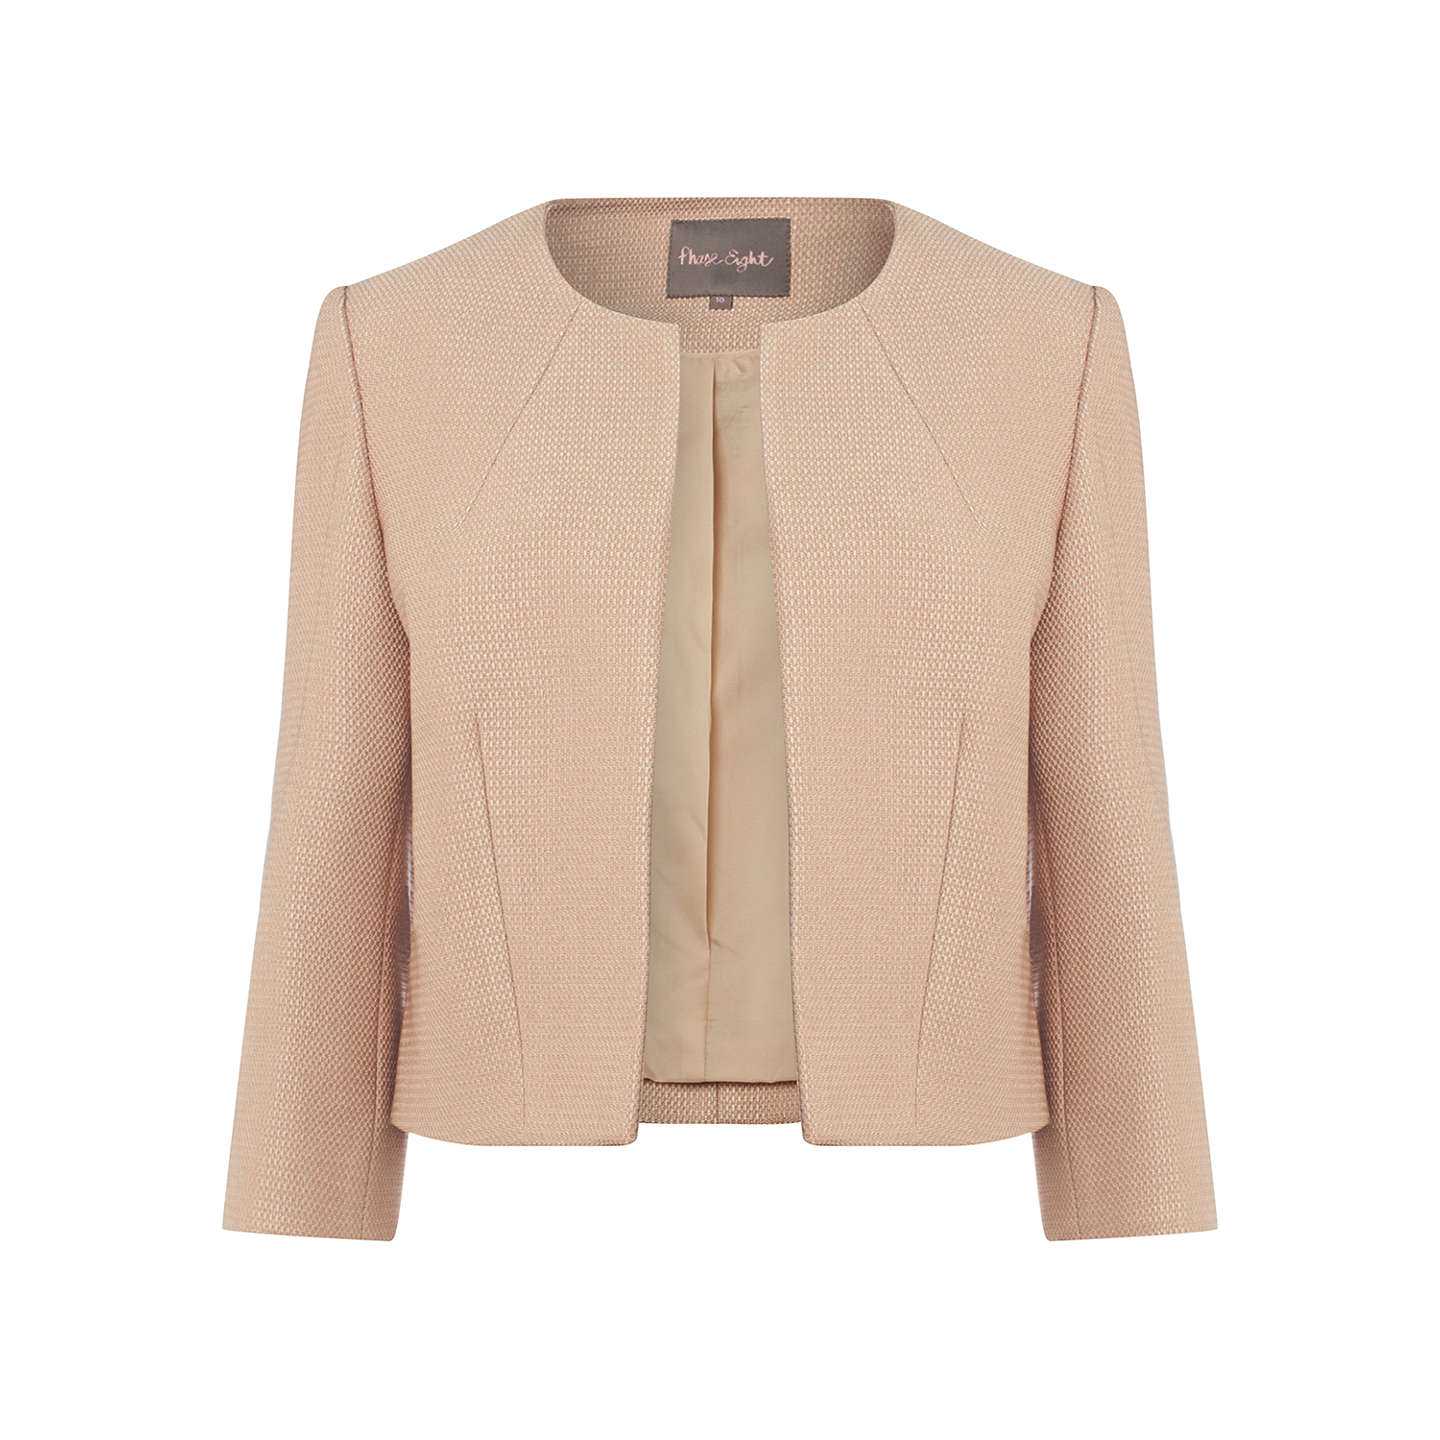 BuyPhase Eight Livvy Textured Jacket, Latte, 6 Online at johnlewis.com